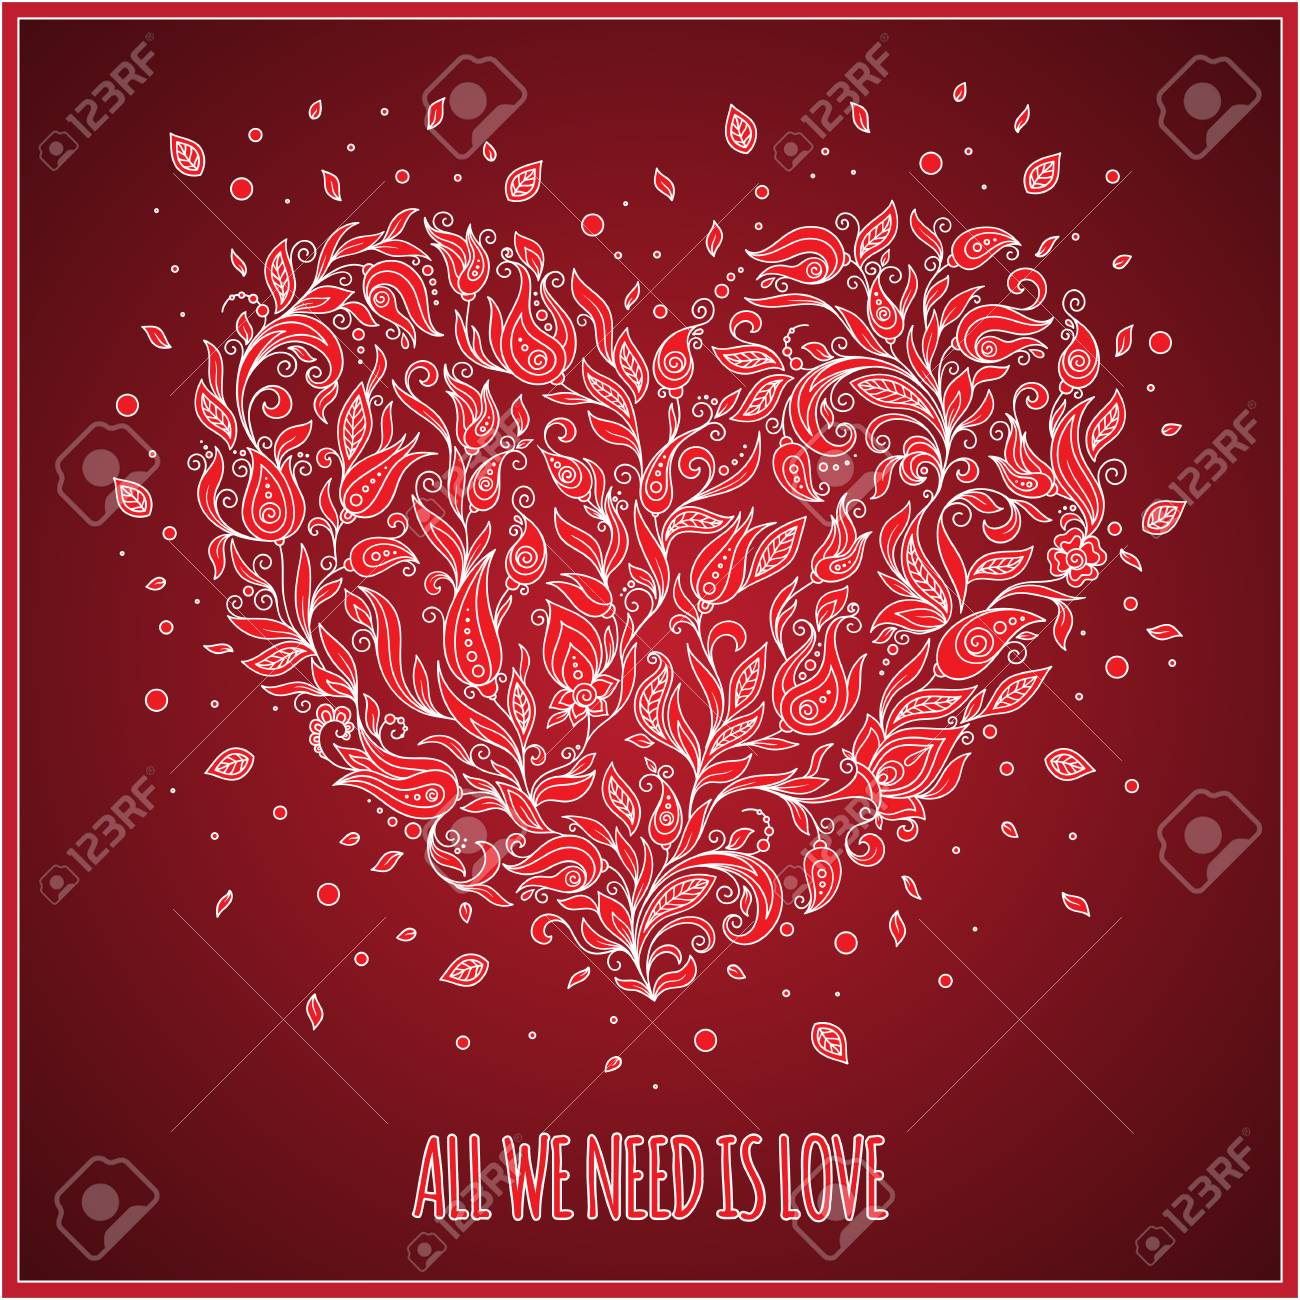 Beautiful Greeting Happy Valentines Day Card Of Floral Heart